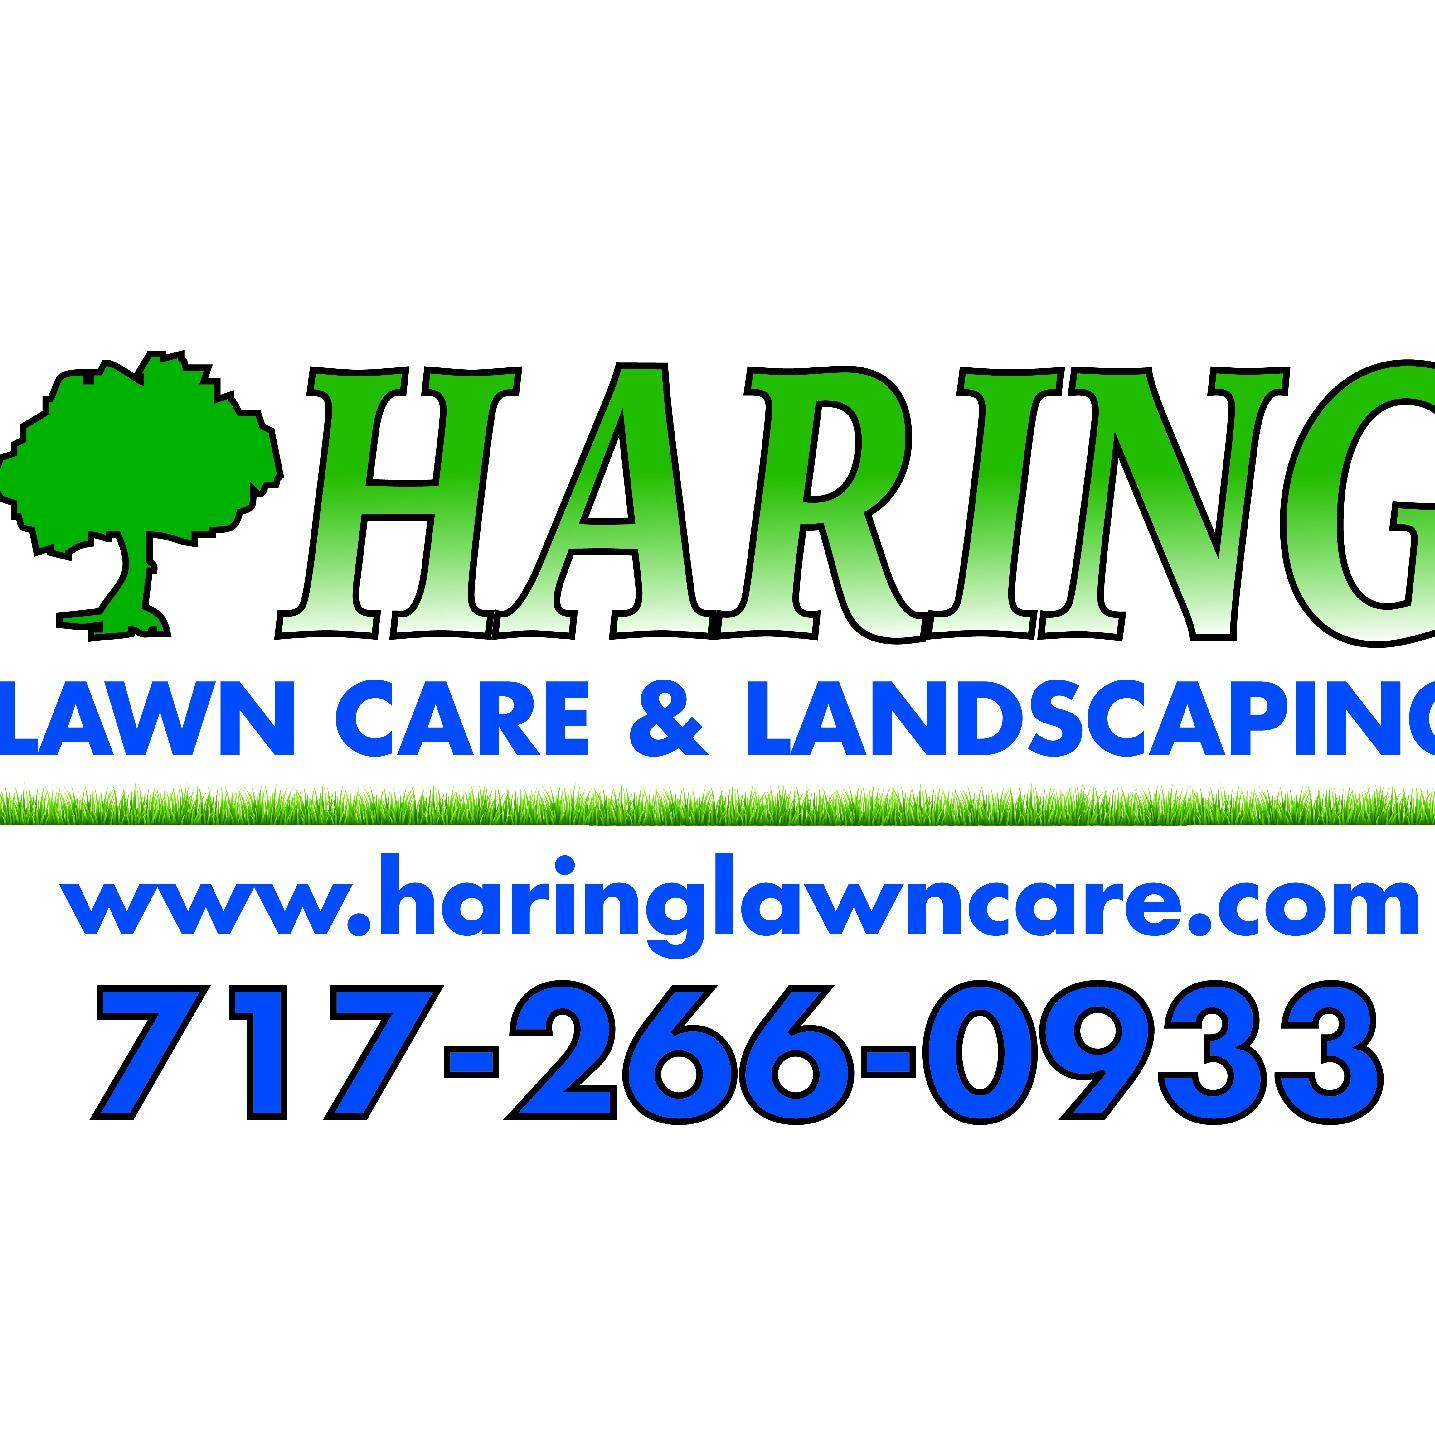 Haring lawn care landscaping llc york haven for Local lawn care services